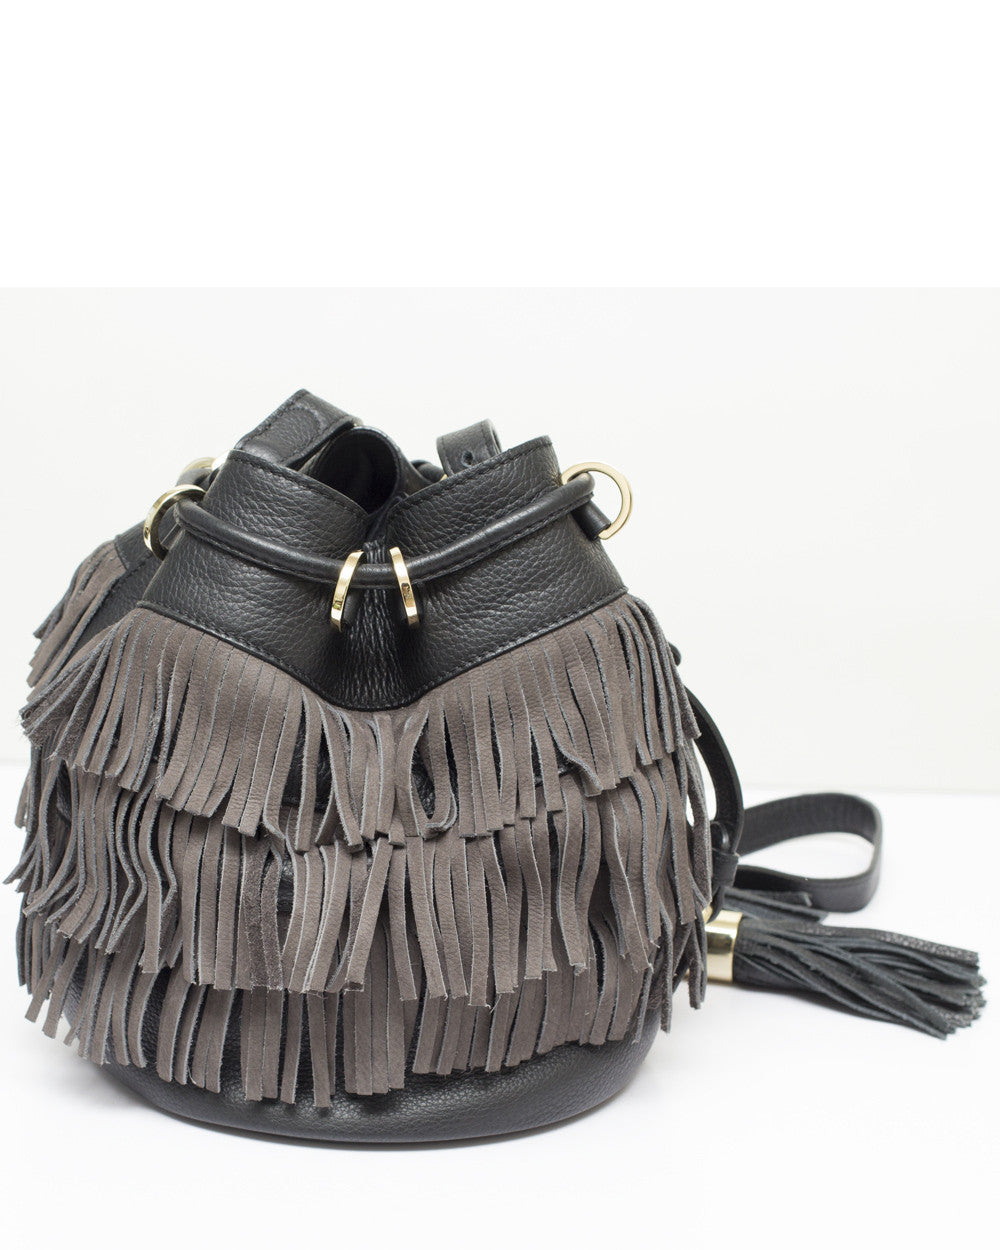 Graphite Viki Fringe Bucket Bag